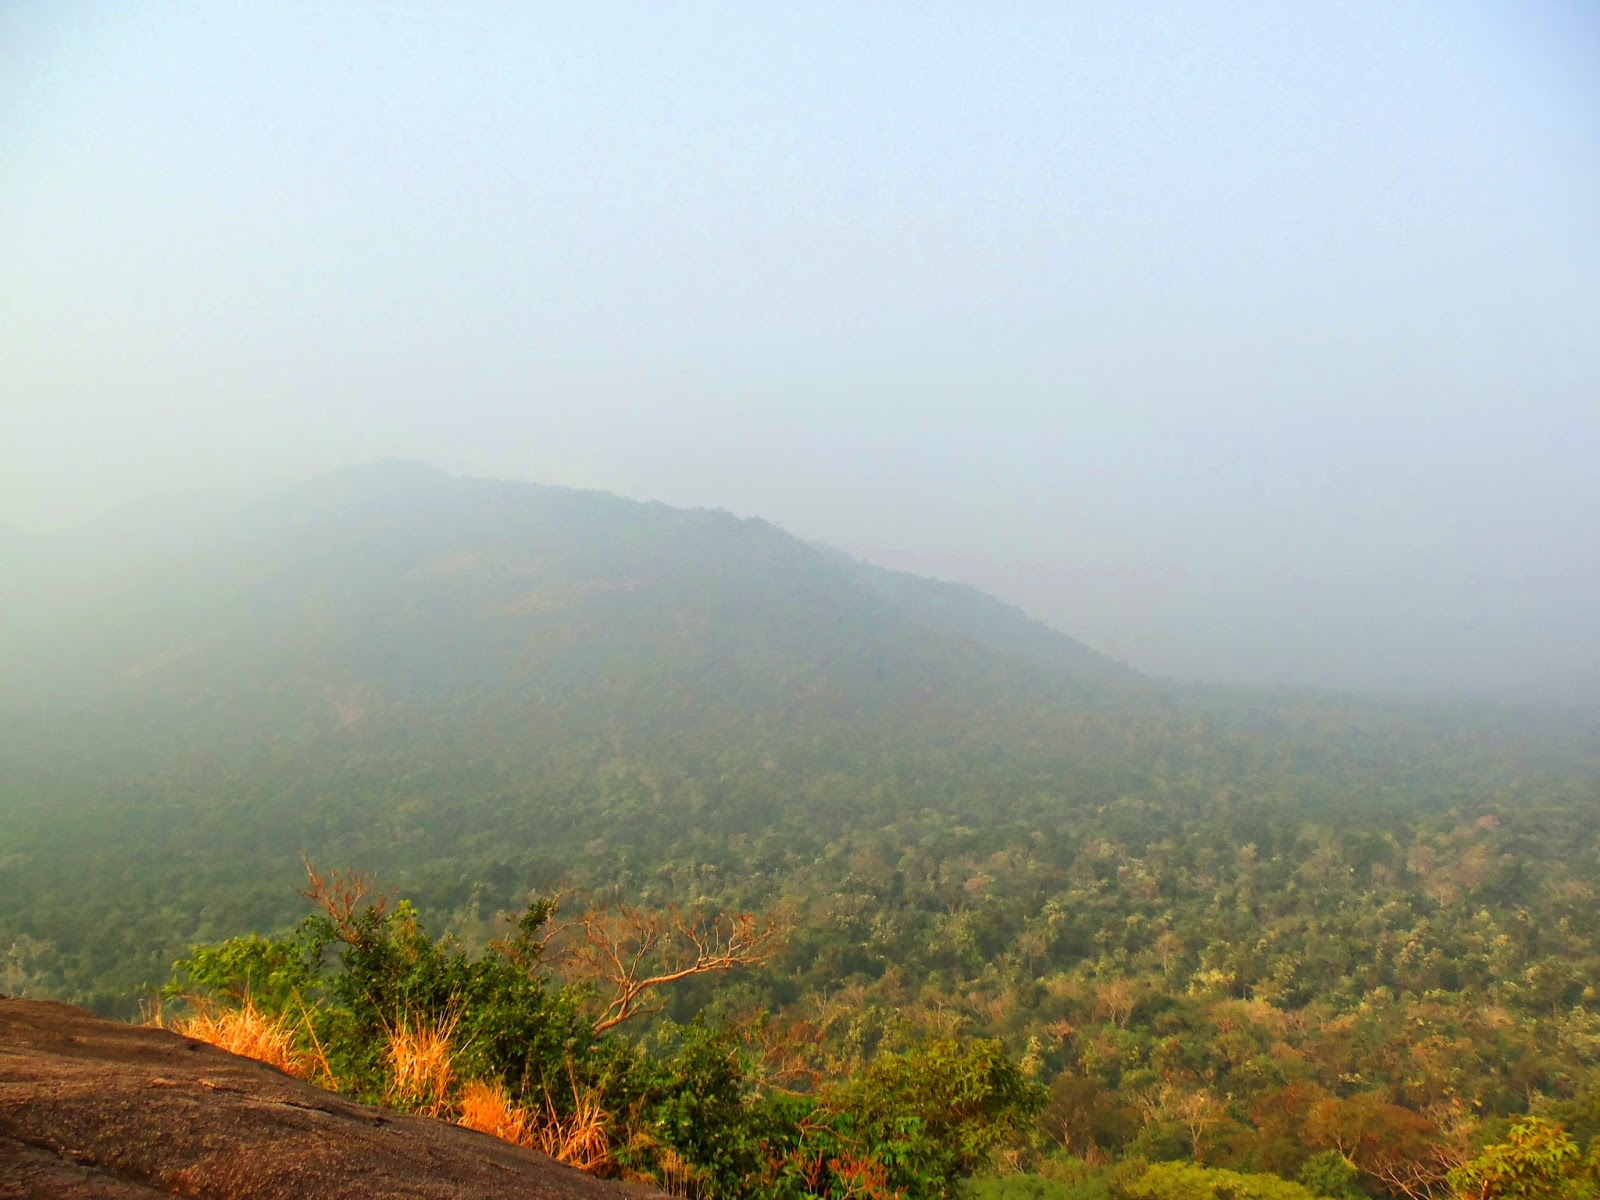 The view of the jungle from the top